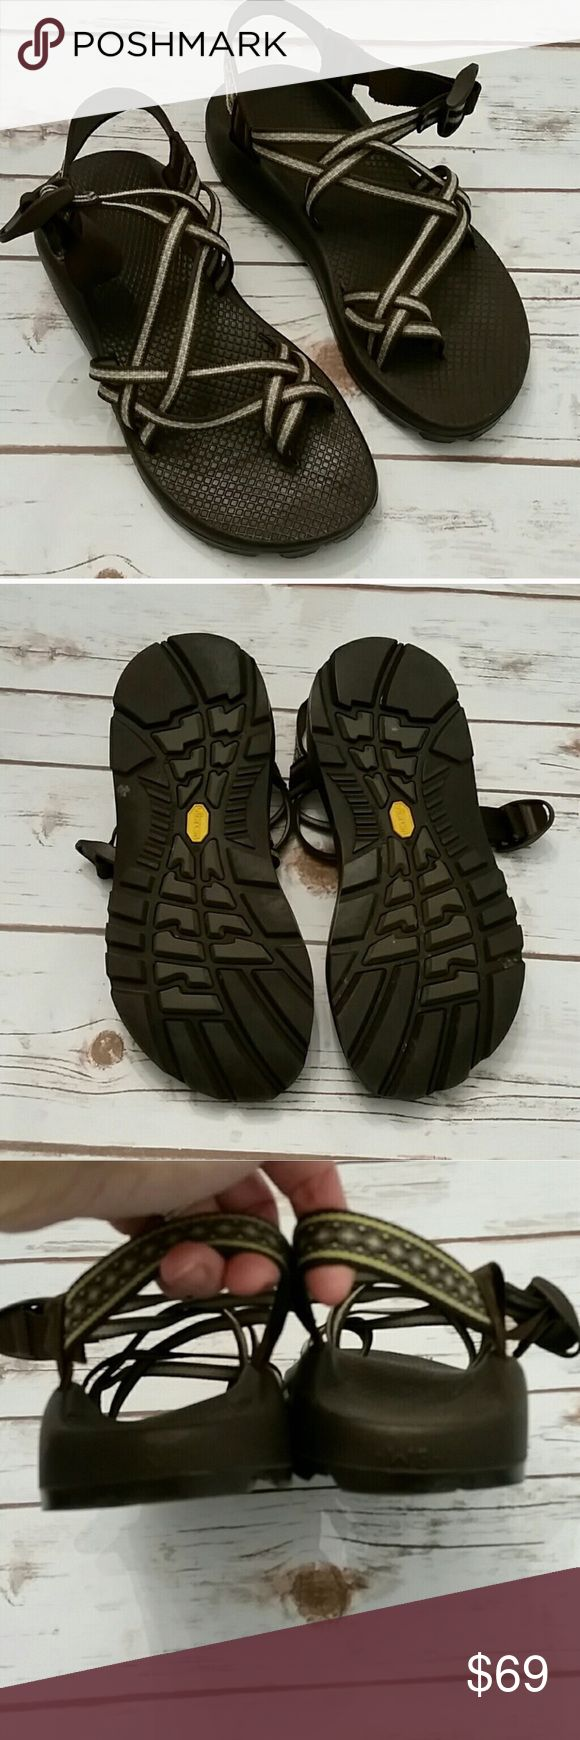 Chacos Size 8 Chacos for sale. Worn once. Deep, dark brown color - almost appear black in color. Size 8.  Perfect for the active!! Chacos Shoes Sandals